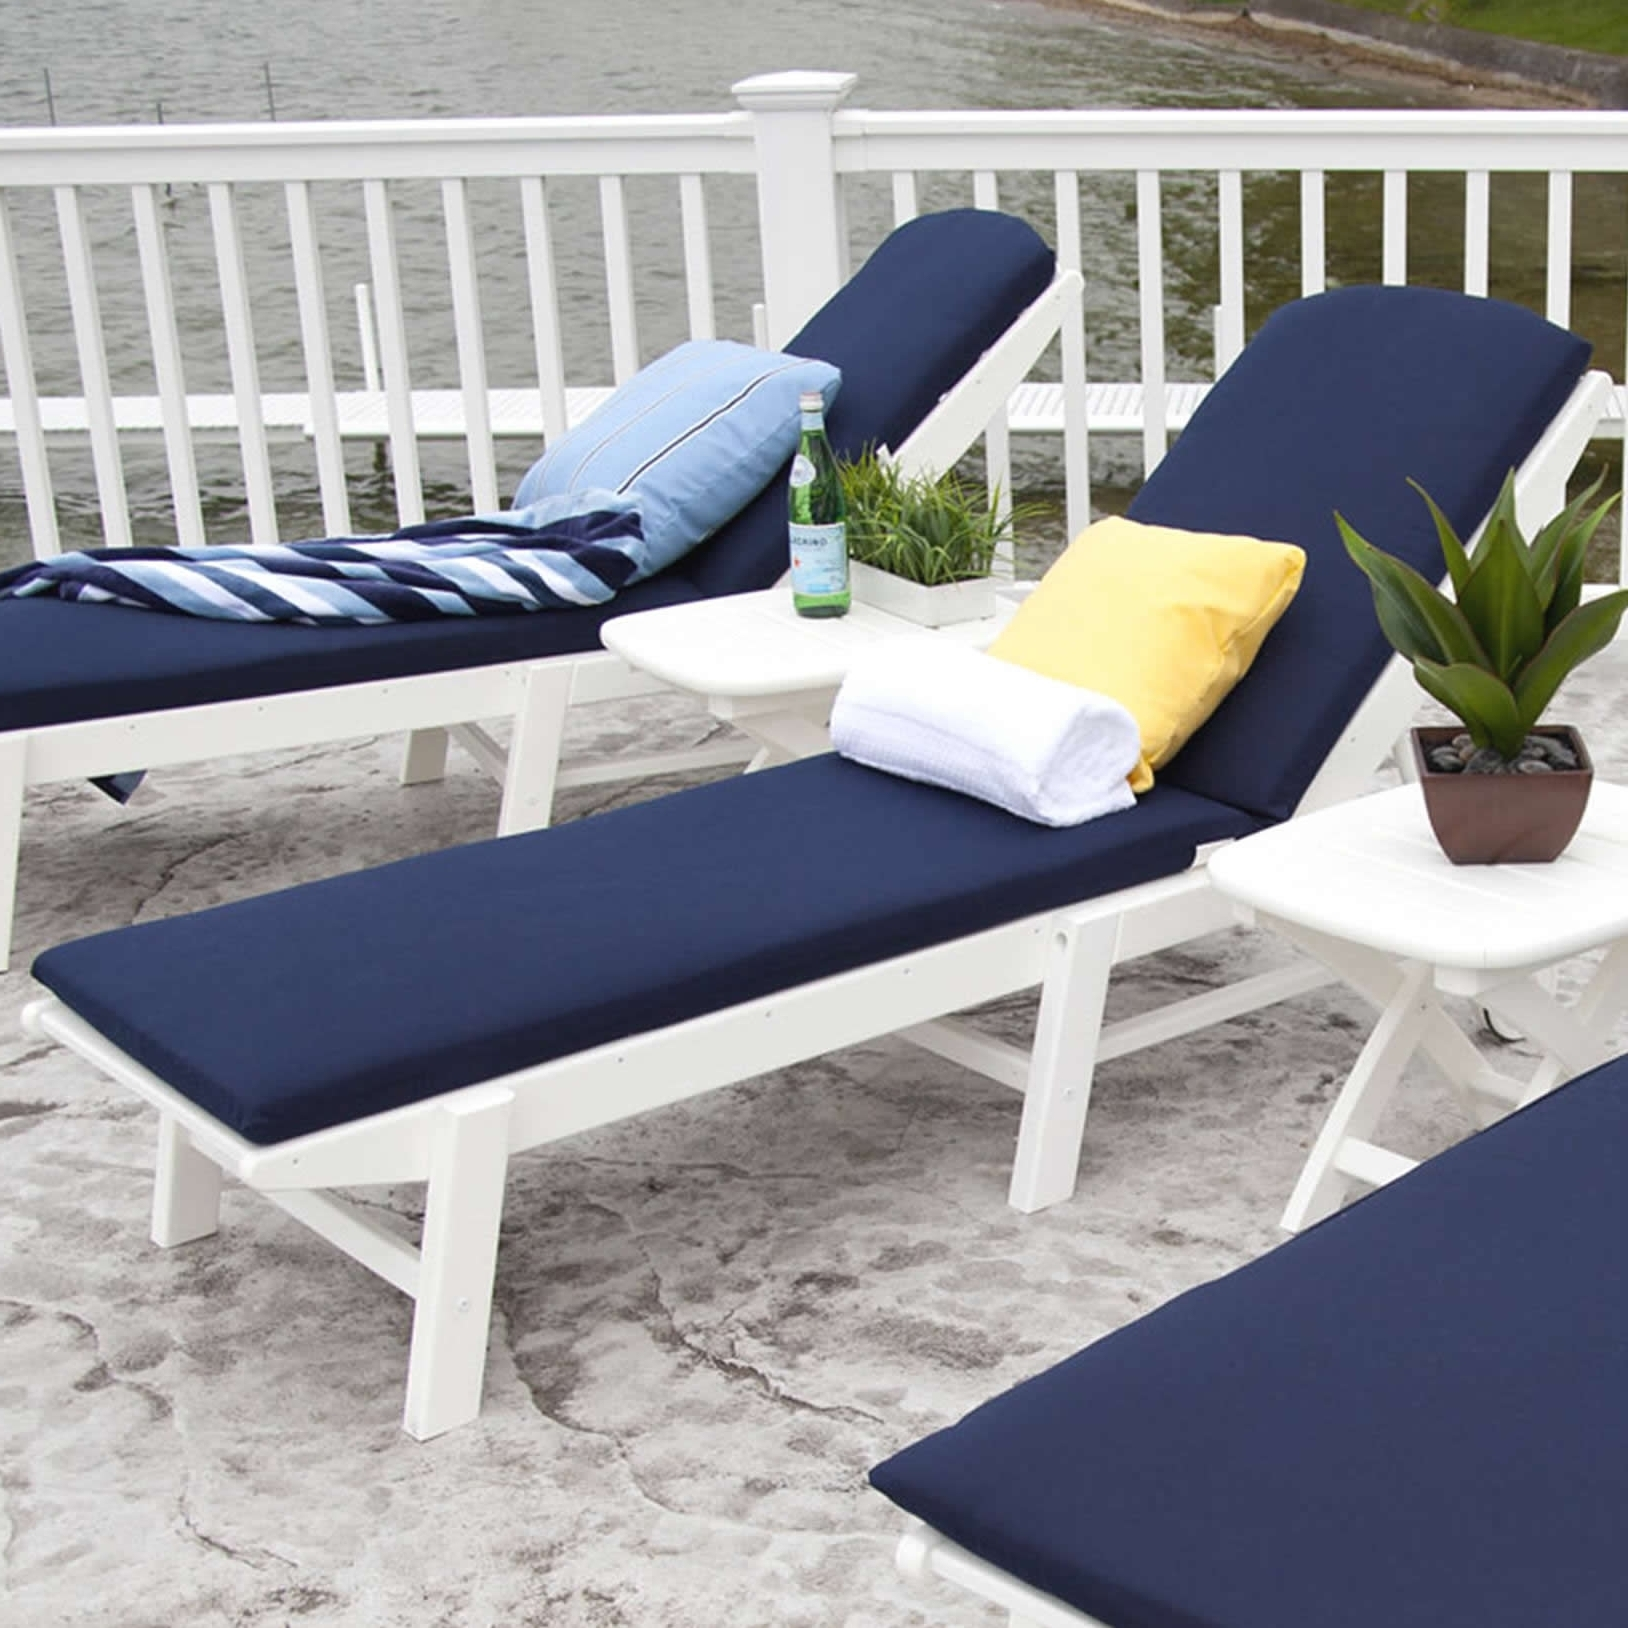 Polywood Nautical Chaise Lounge Cushions For Most Current Chaise Lounge Chair Outdoor Cushions (View 12 of 15)